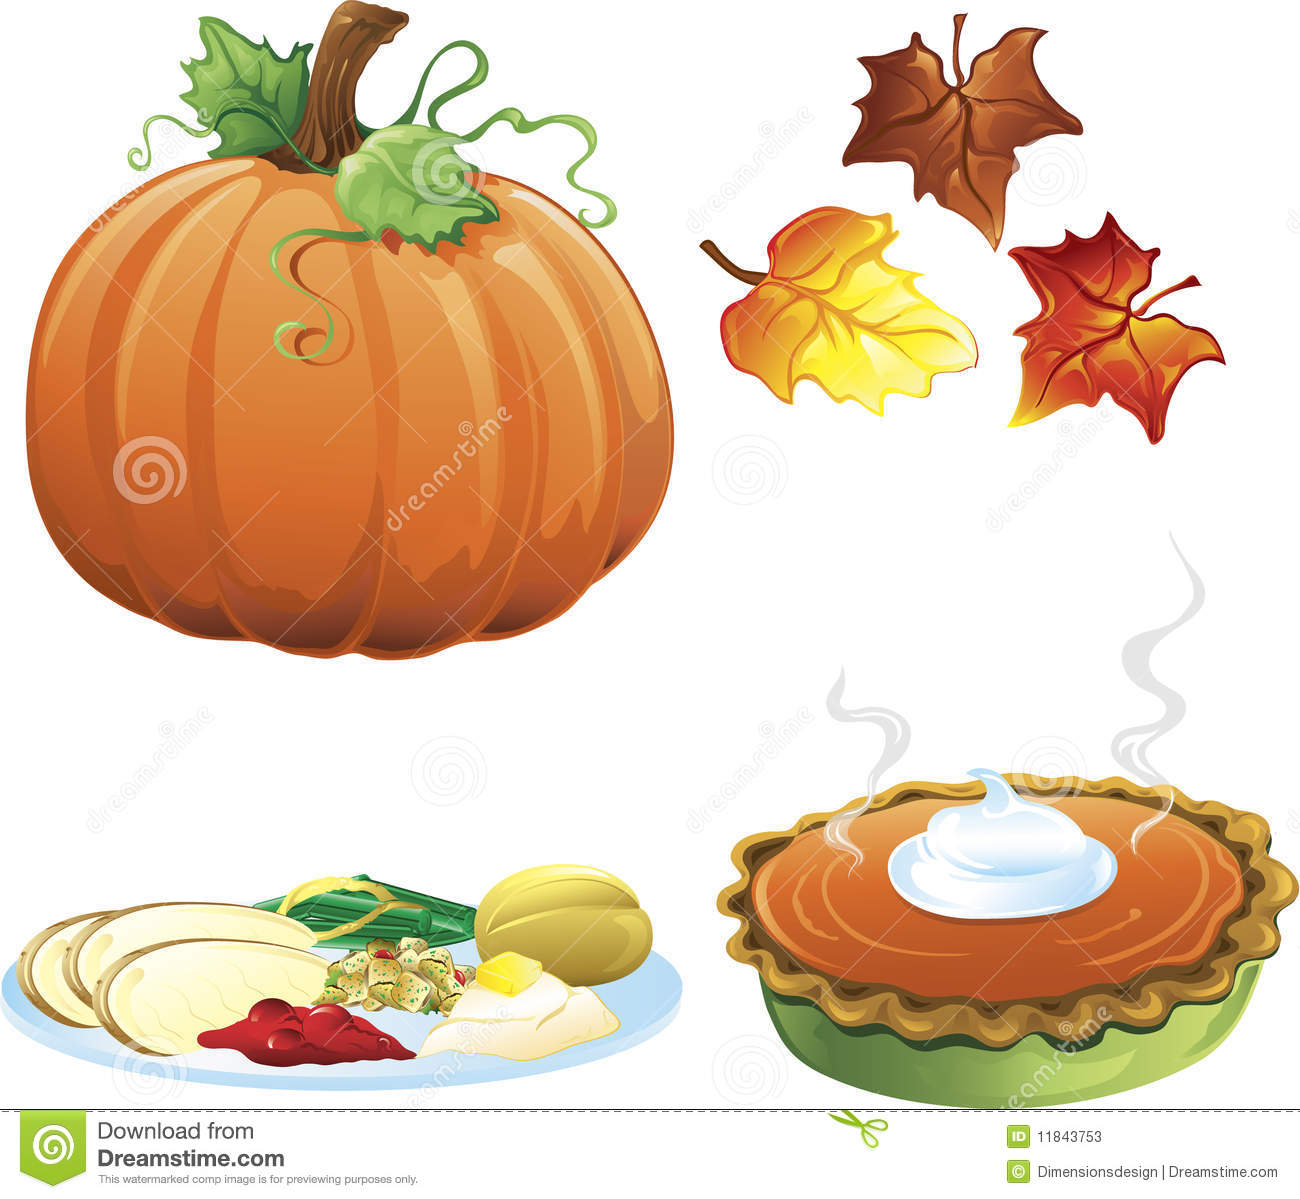 Thanksgiving Royalty Free Image >> Autumn And Fall Icons Stock Photos - Image: 11843753